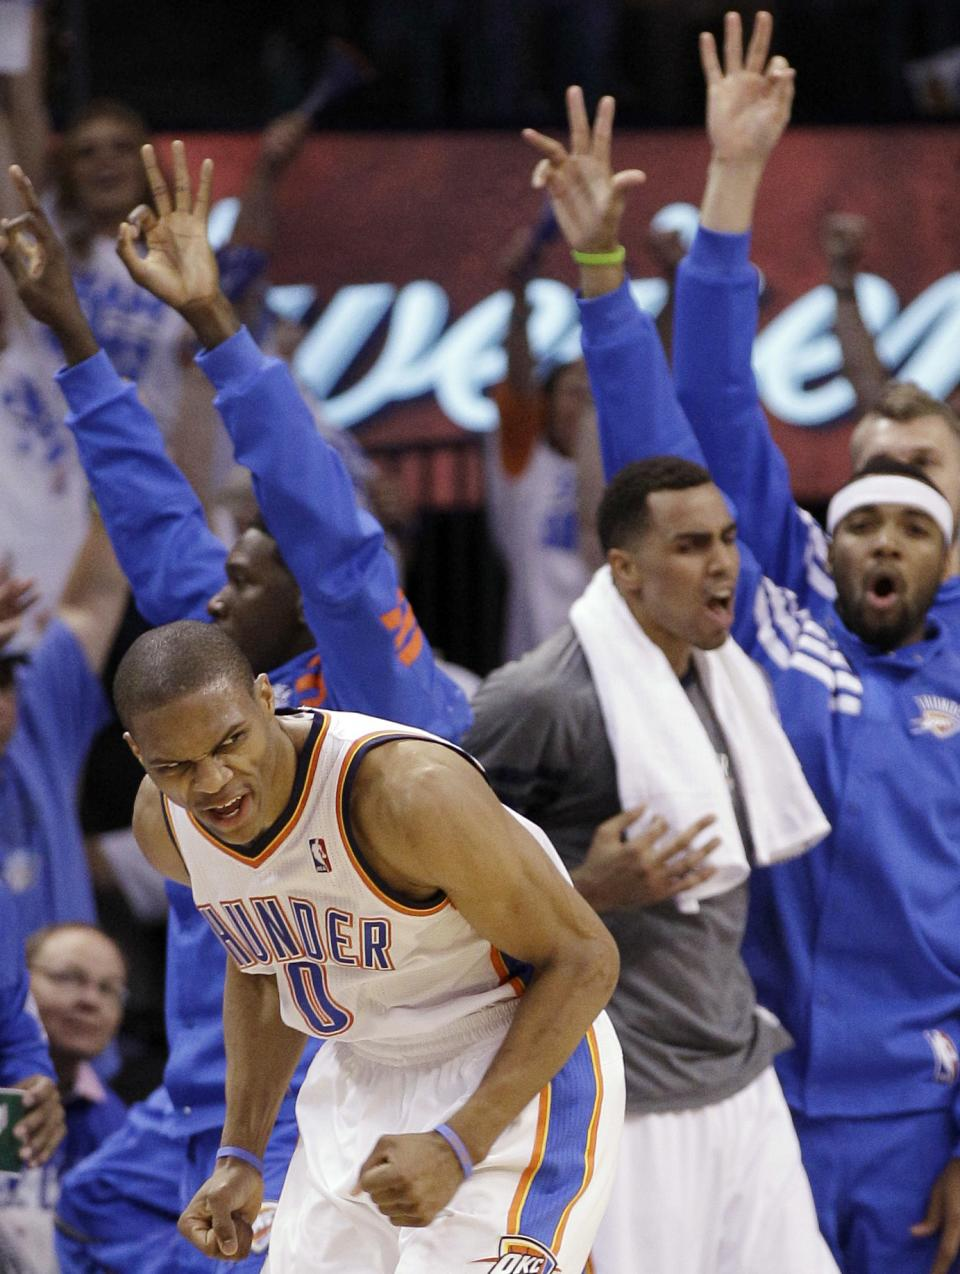 Oklahoma City Thunder guard Russell Westbrook reacts during the first half of Game 4 in the NBA basketball playoffs Western Conference finals against the San Antonio Spurs, Saturday, June 2, 2012, in Oklahoma City. (AP Photo/Eric Gay)